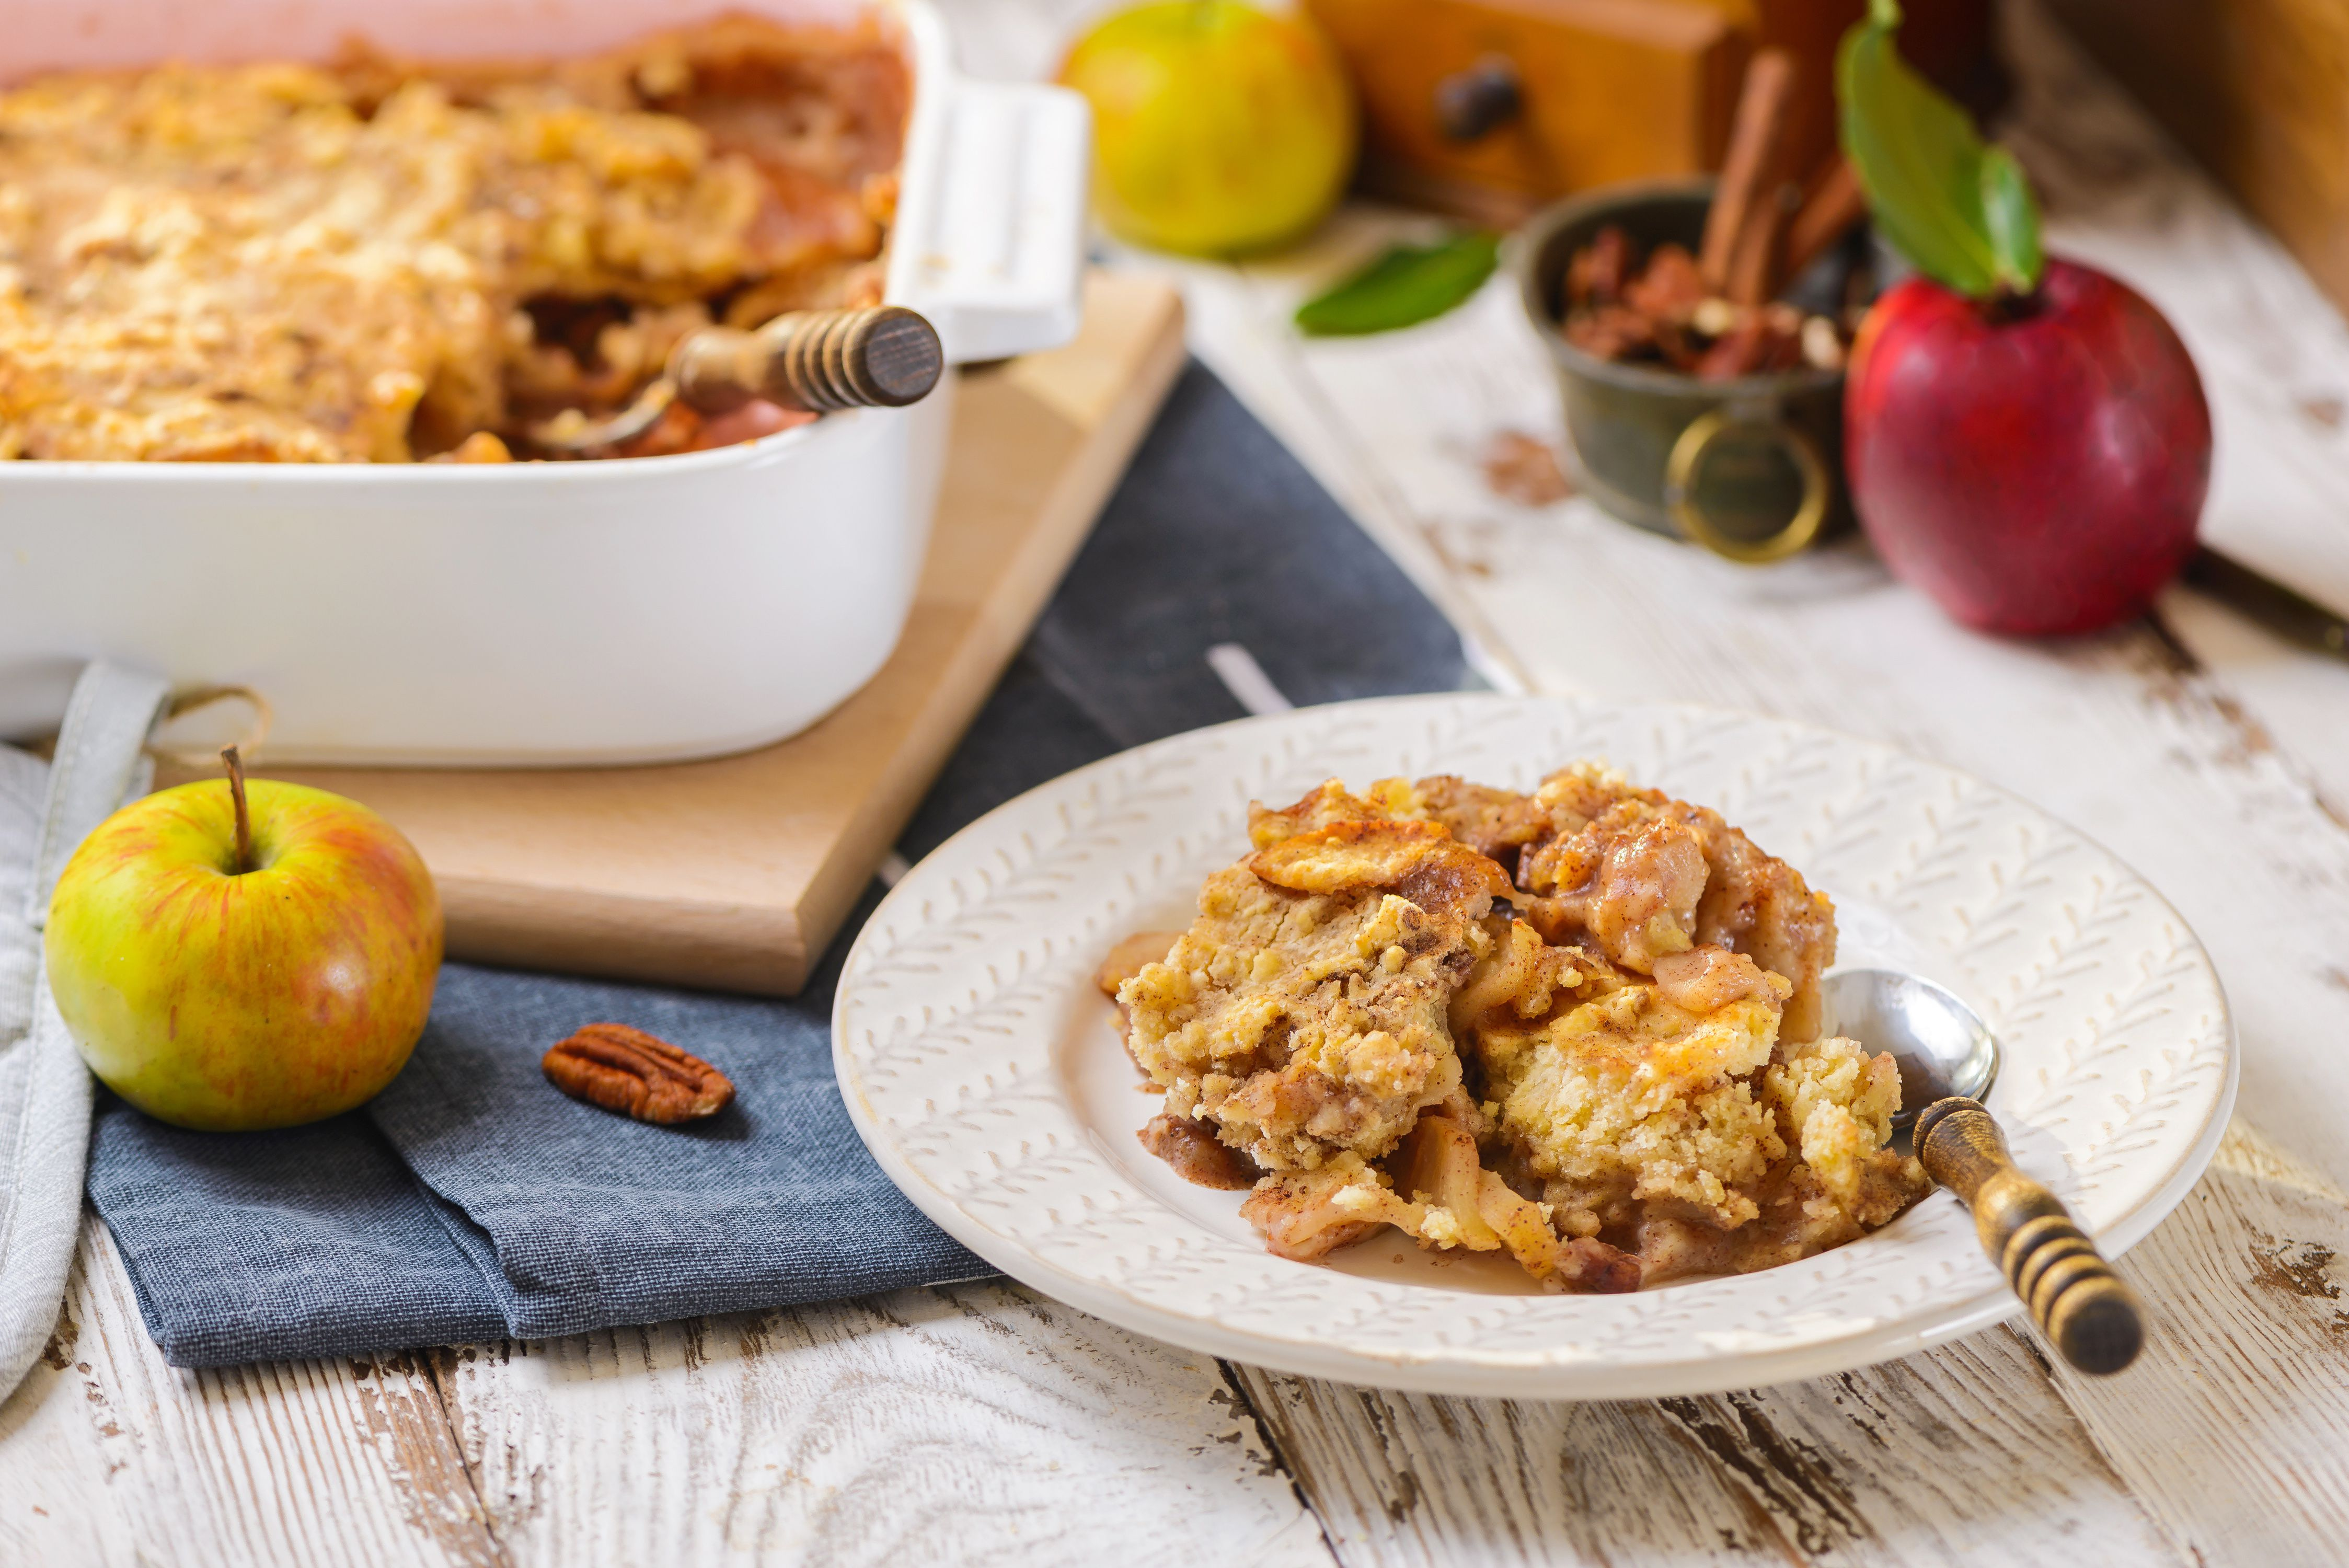 Apple dump cake on a plate with a spoon